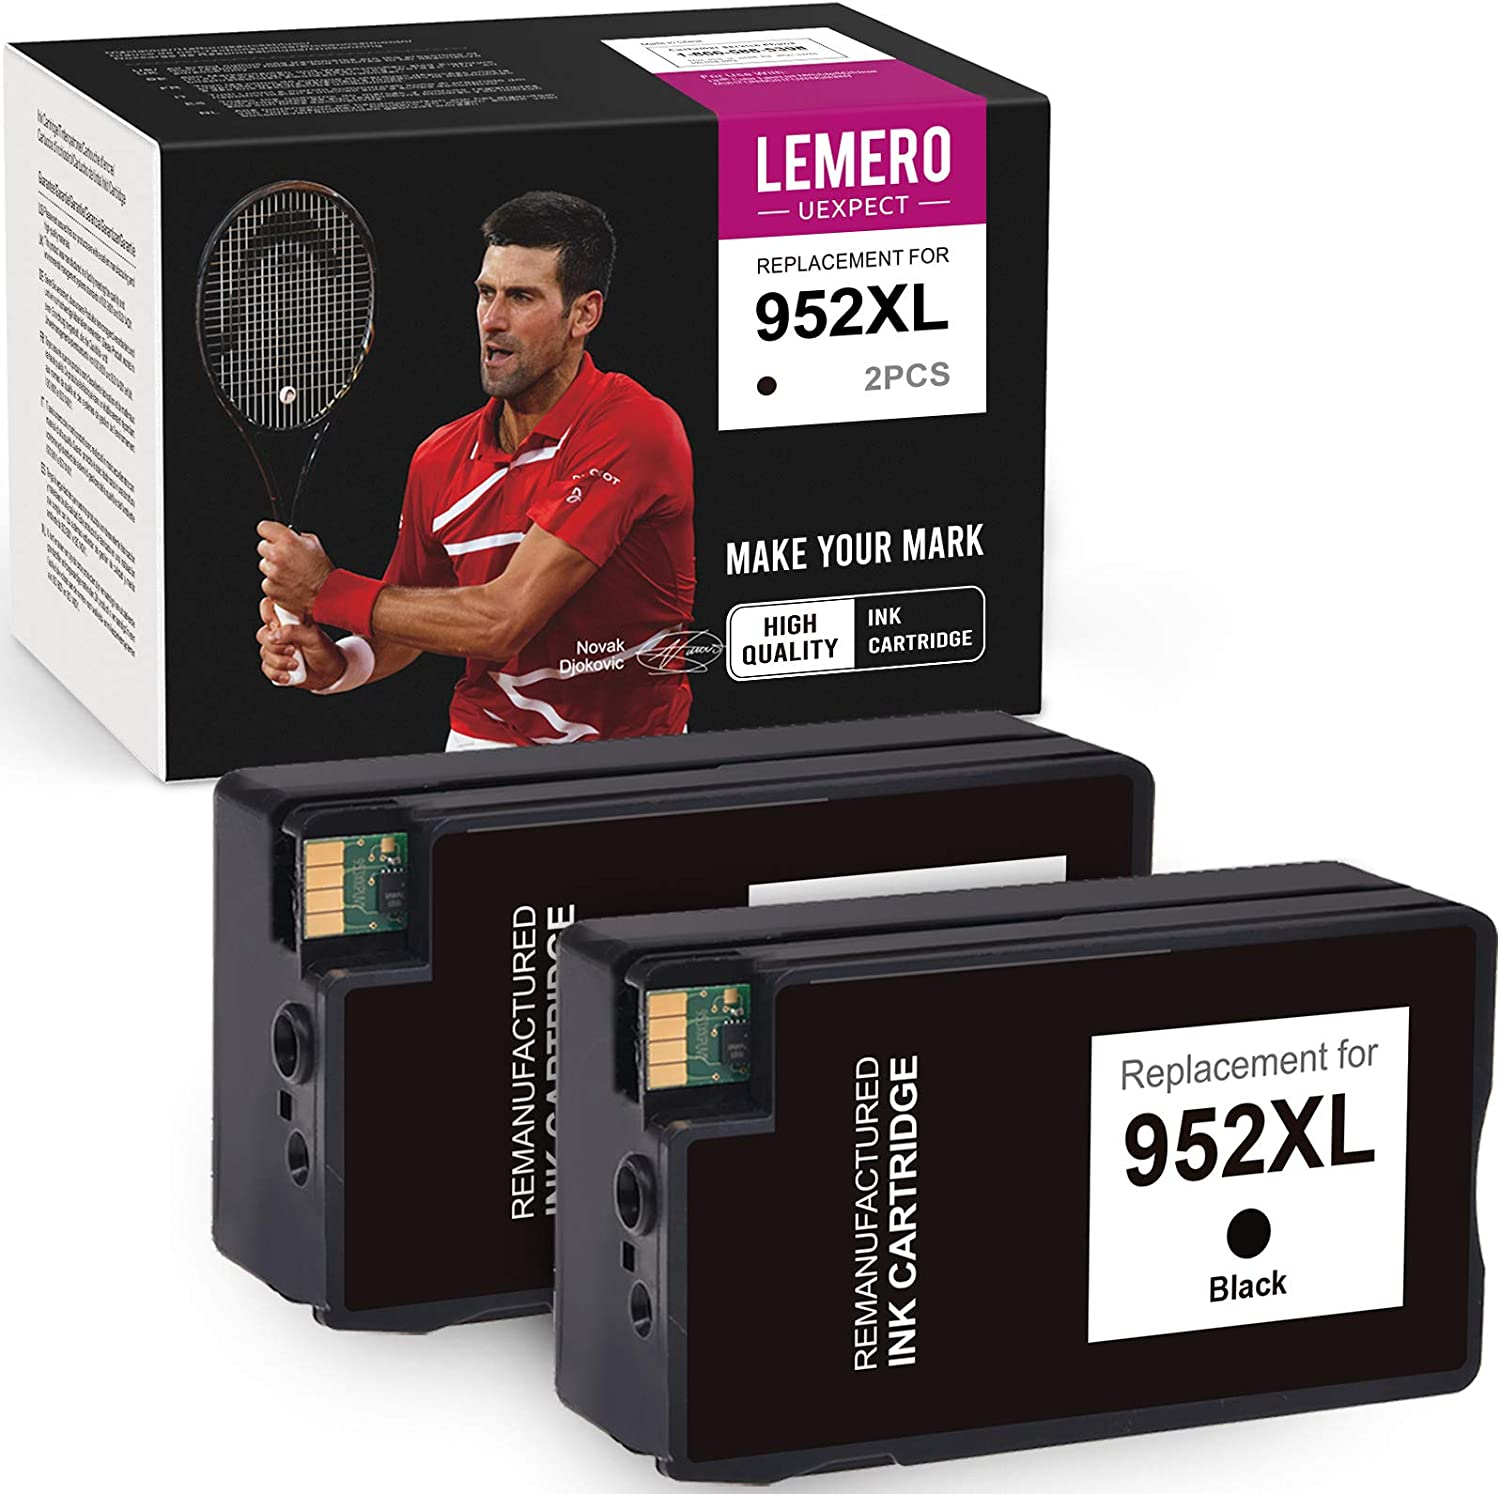 LemeroUexpect Remanufactured Ink Cartridge Replacement for HP 952 XL 952XL for Officejet Pro 8710 7720 7740 8720 8740 8730 7730 8216 8745 8719 8718 8218 8715 8725 Printer (Black, 2-Pack)